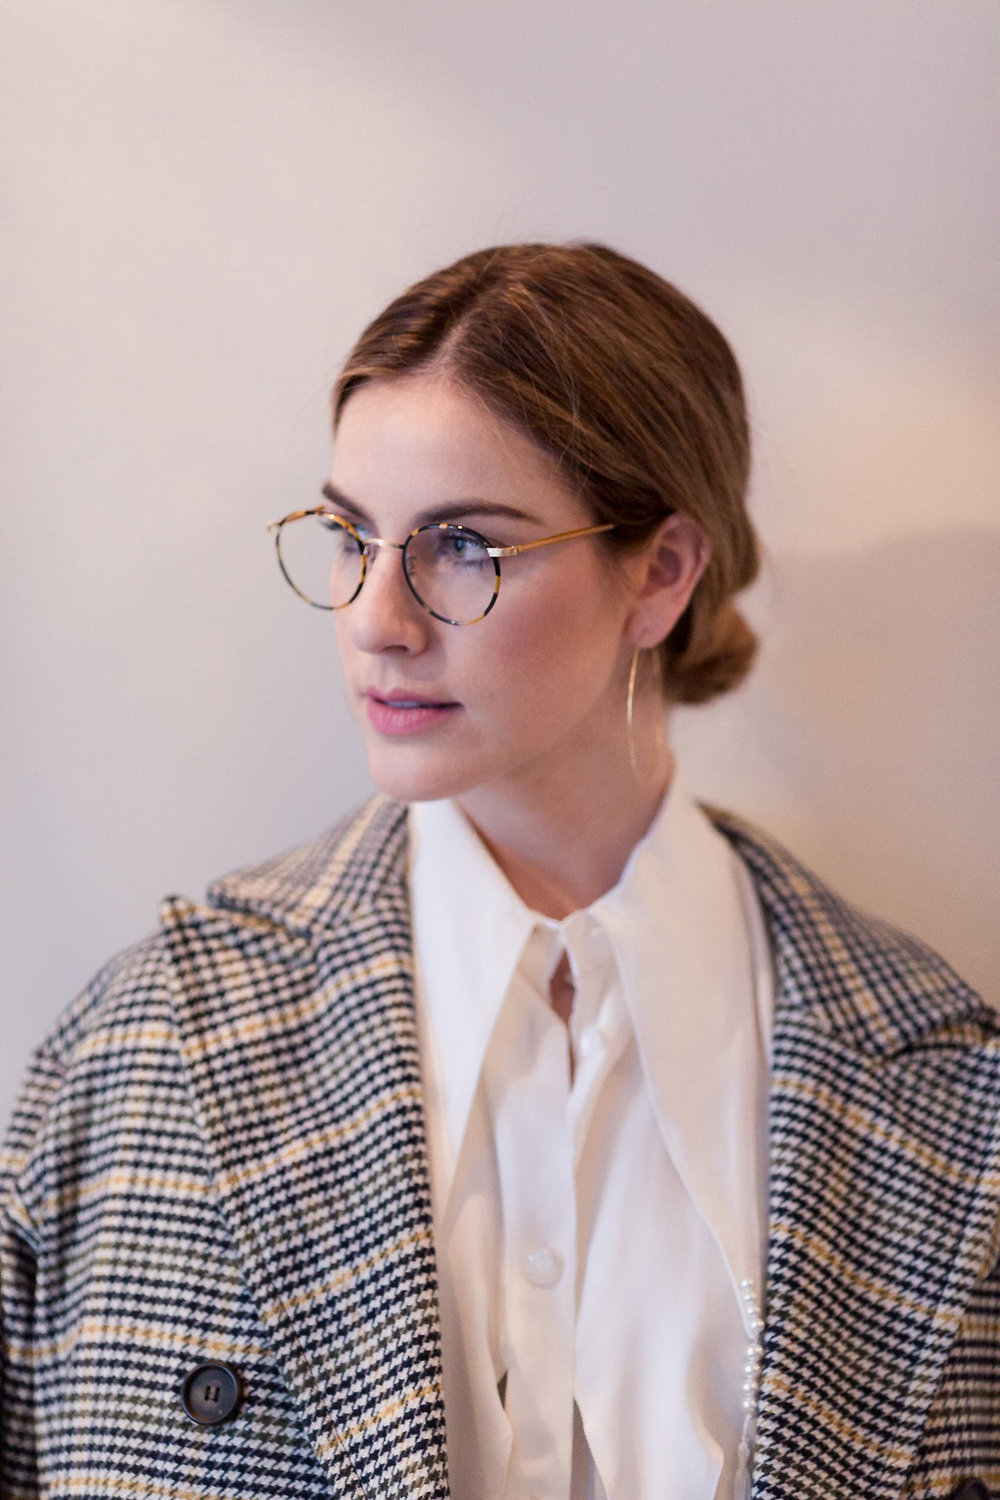 Eldridge Edit_anna_e_cottrell_fashion_blog_blogger_nordstrom_topshop_houndstooth_double_breasted_duster_coat_sale_topshop_garret_leight_glasses_thatch_lola_14k_gold_hoops_vintage_zara_bug_bag_mgb_photo_18.jpg